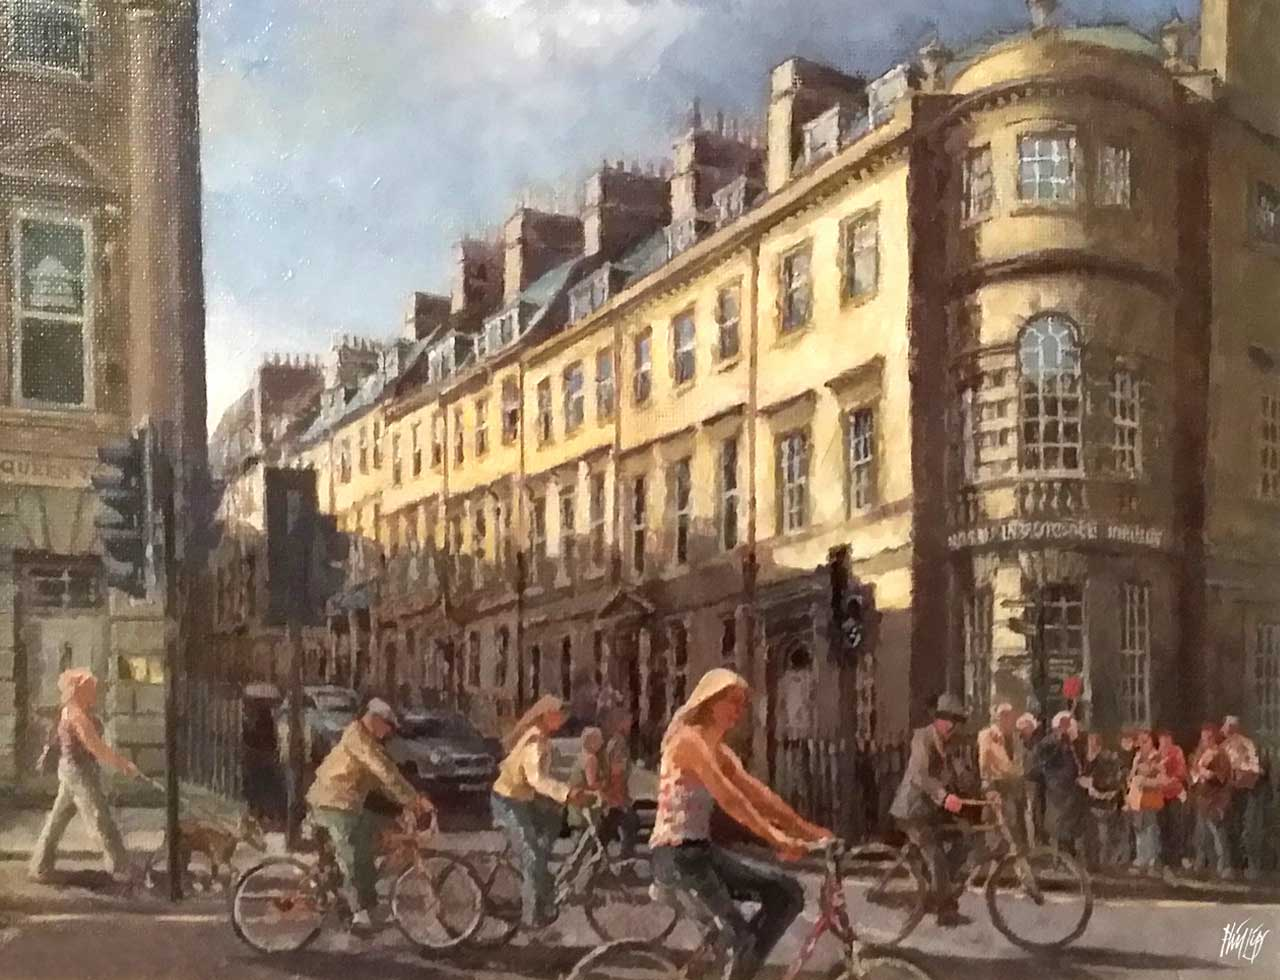 Painting of rush hour in the city of Bath, Somerset